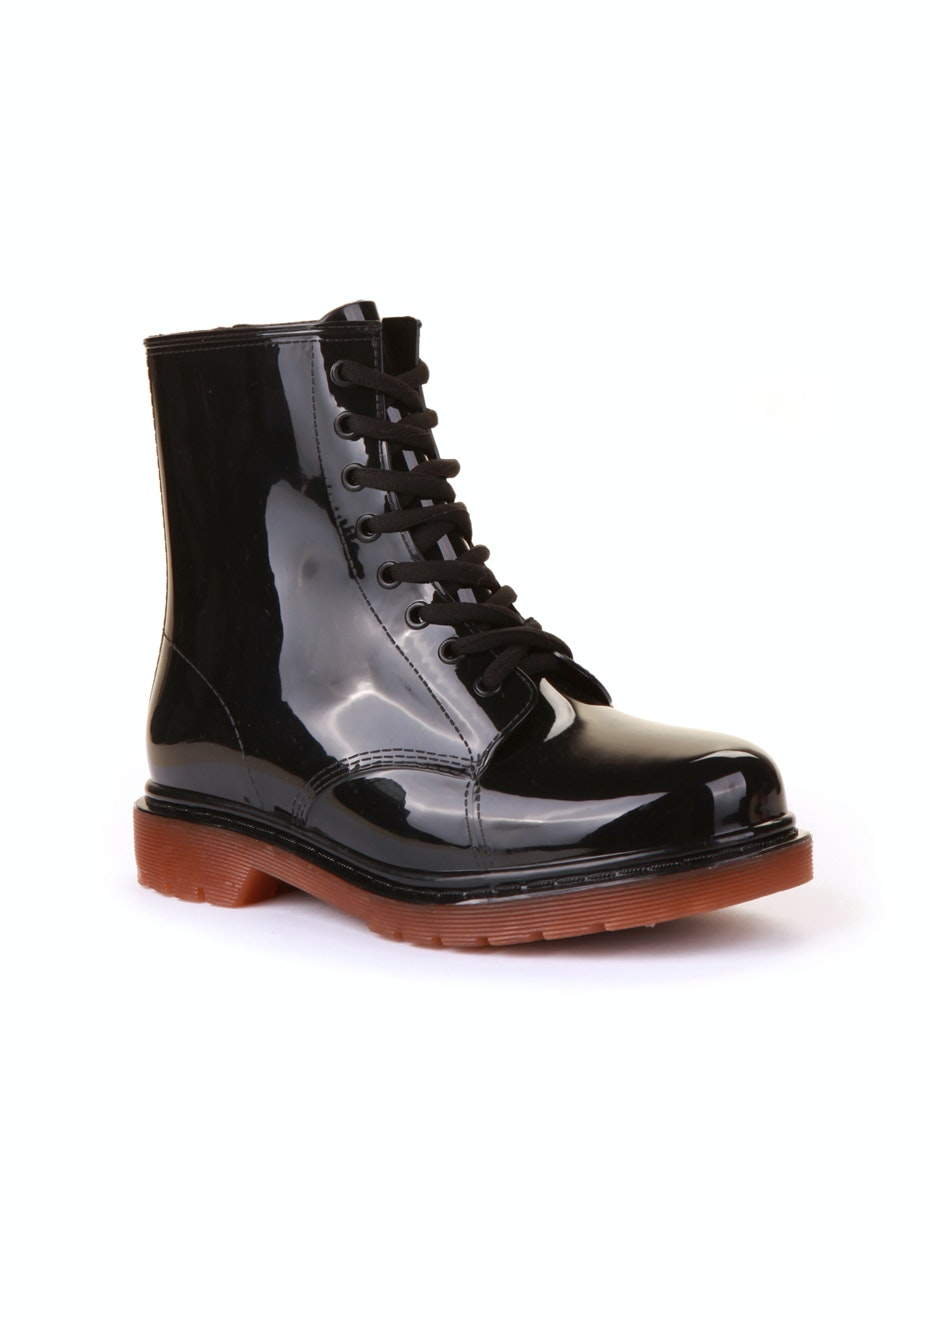 Two Tone Combat Boot - Black/Tan Sole